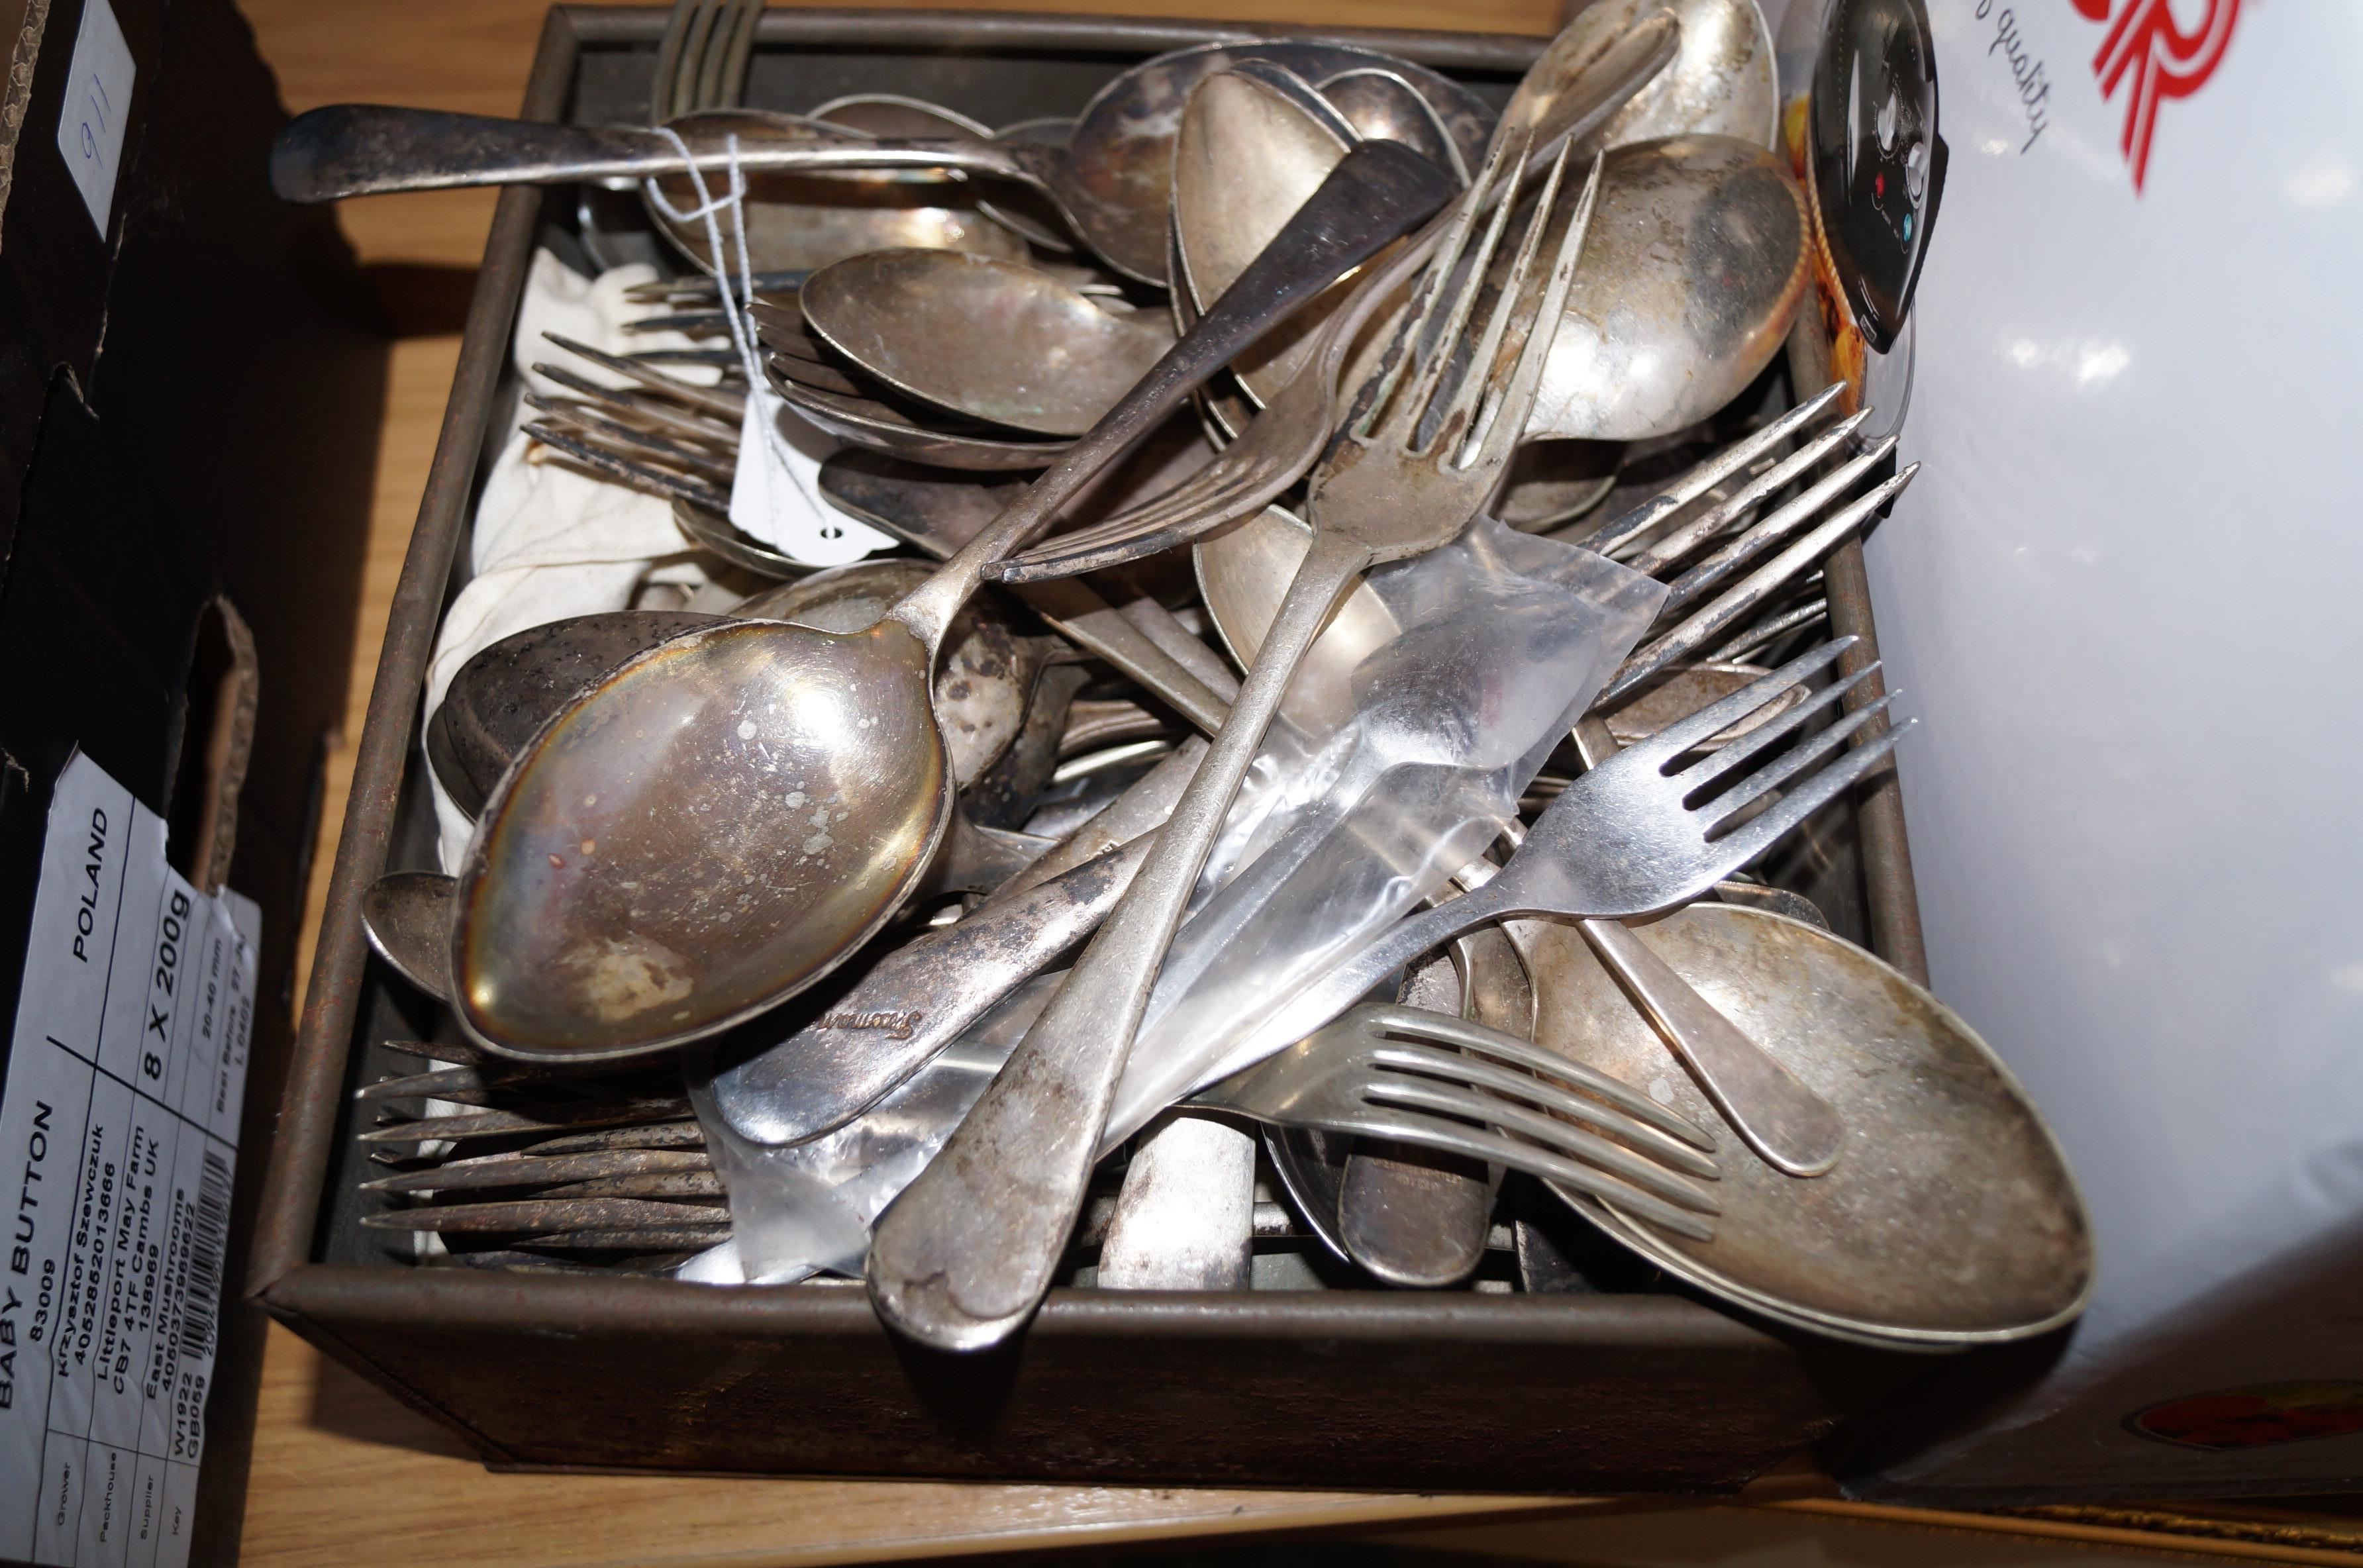 Lot 11 - Large assortment of plated flat ware